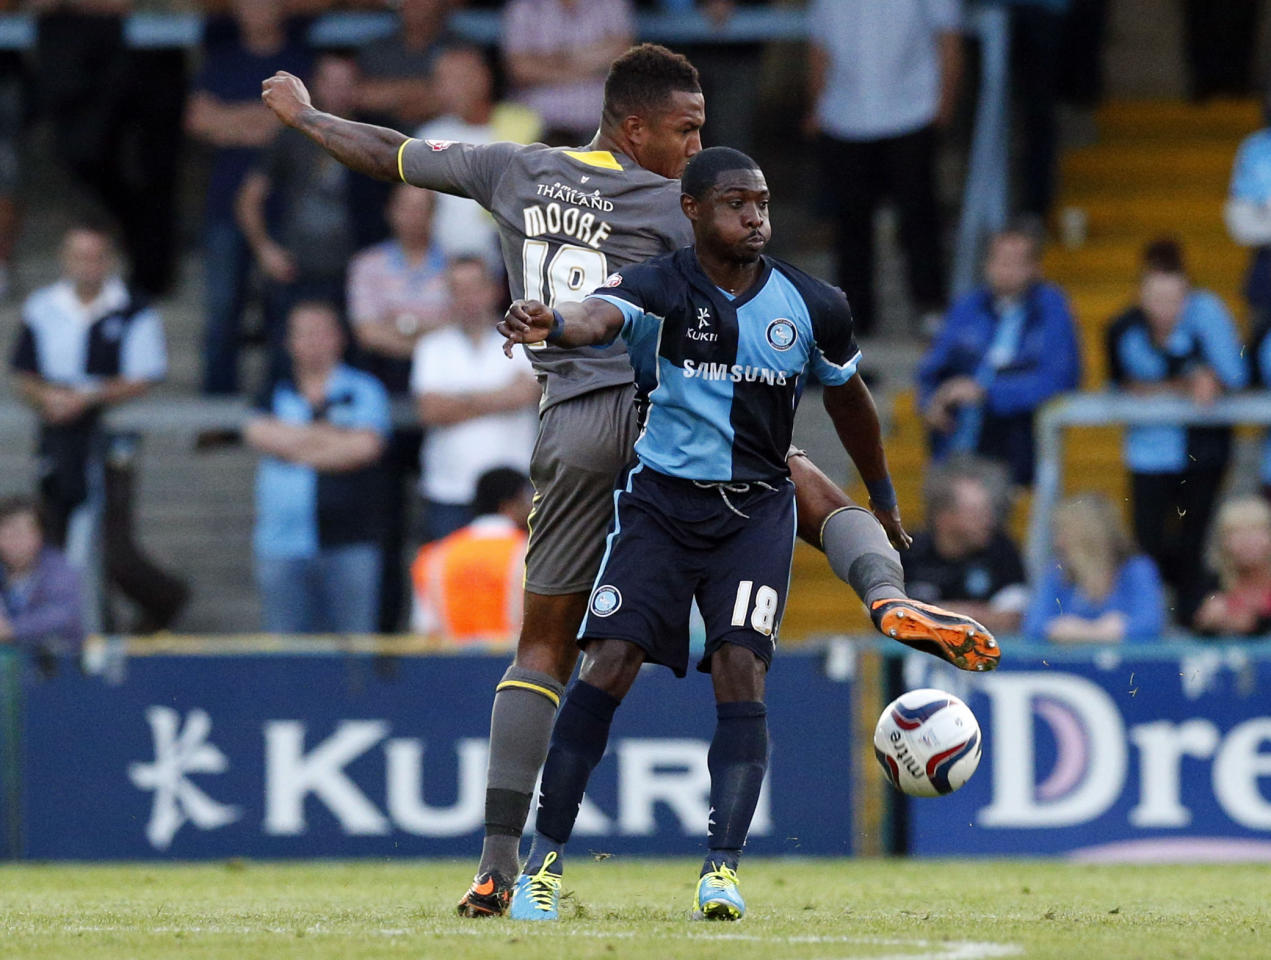 Wycombe's Jo Kuffour (right) tussles with Leicester City's Liam Moore during the Capital One Cup, First Round match at Adams Park, Wycombe.